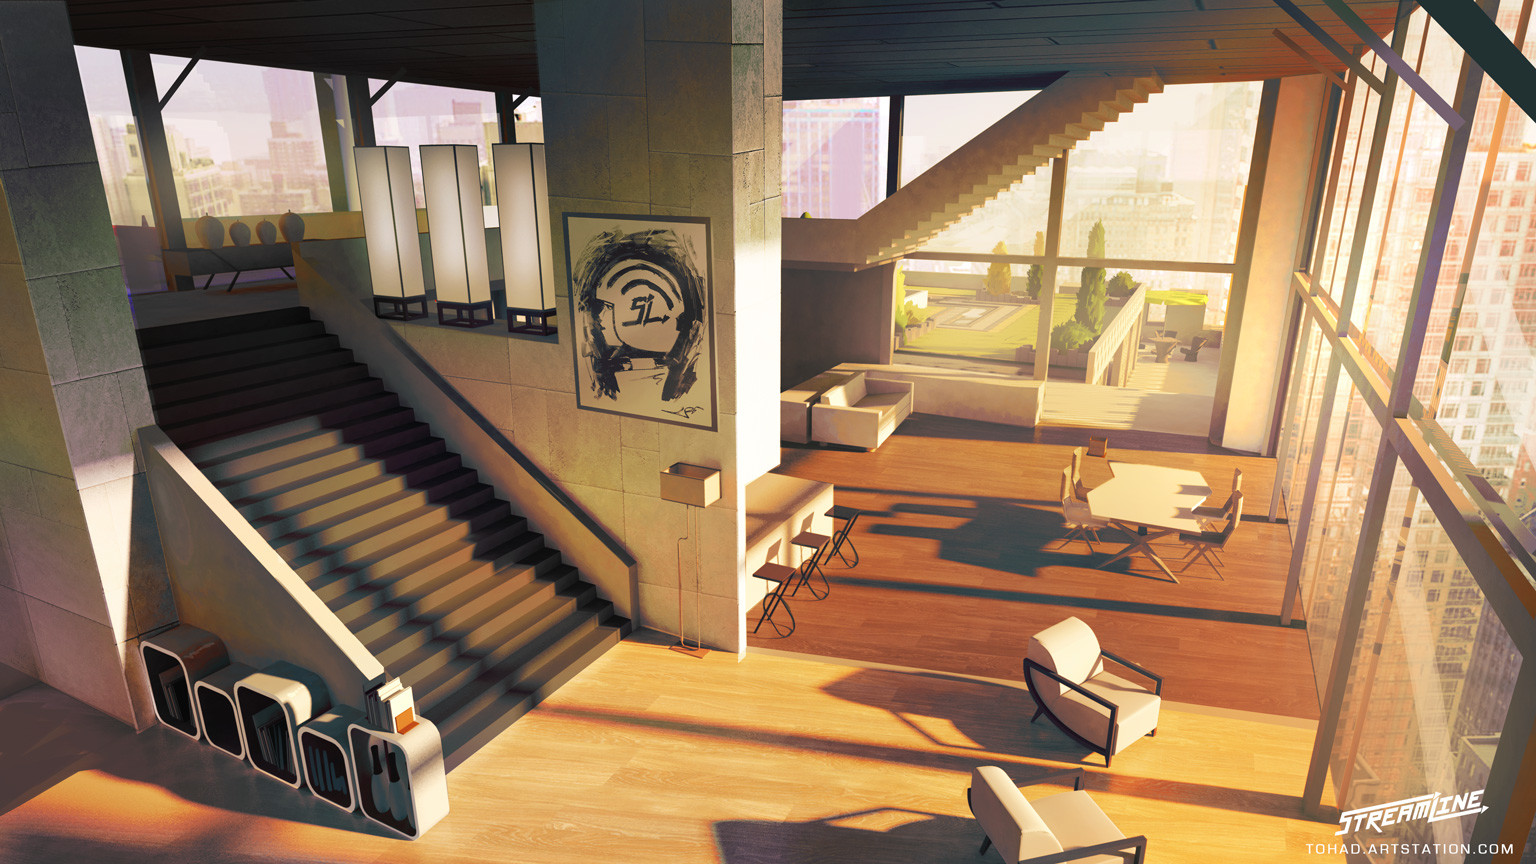 Streamline Concept Art High Rise Lounge By Tohad On